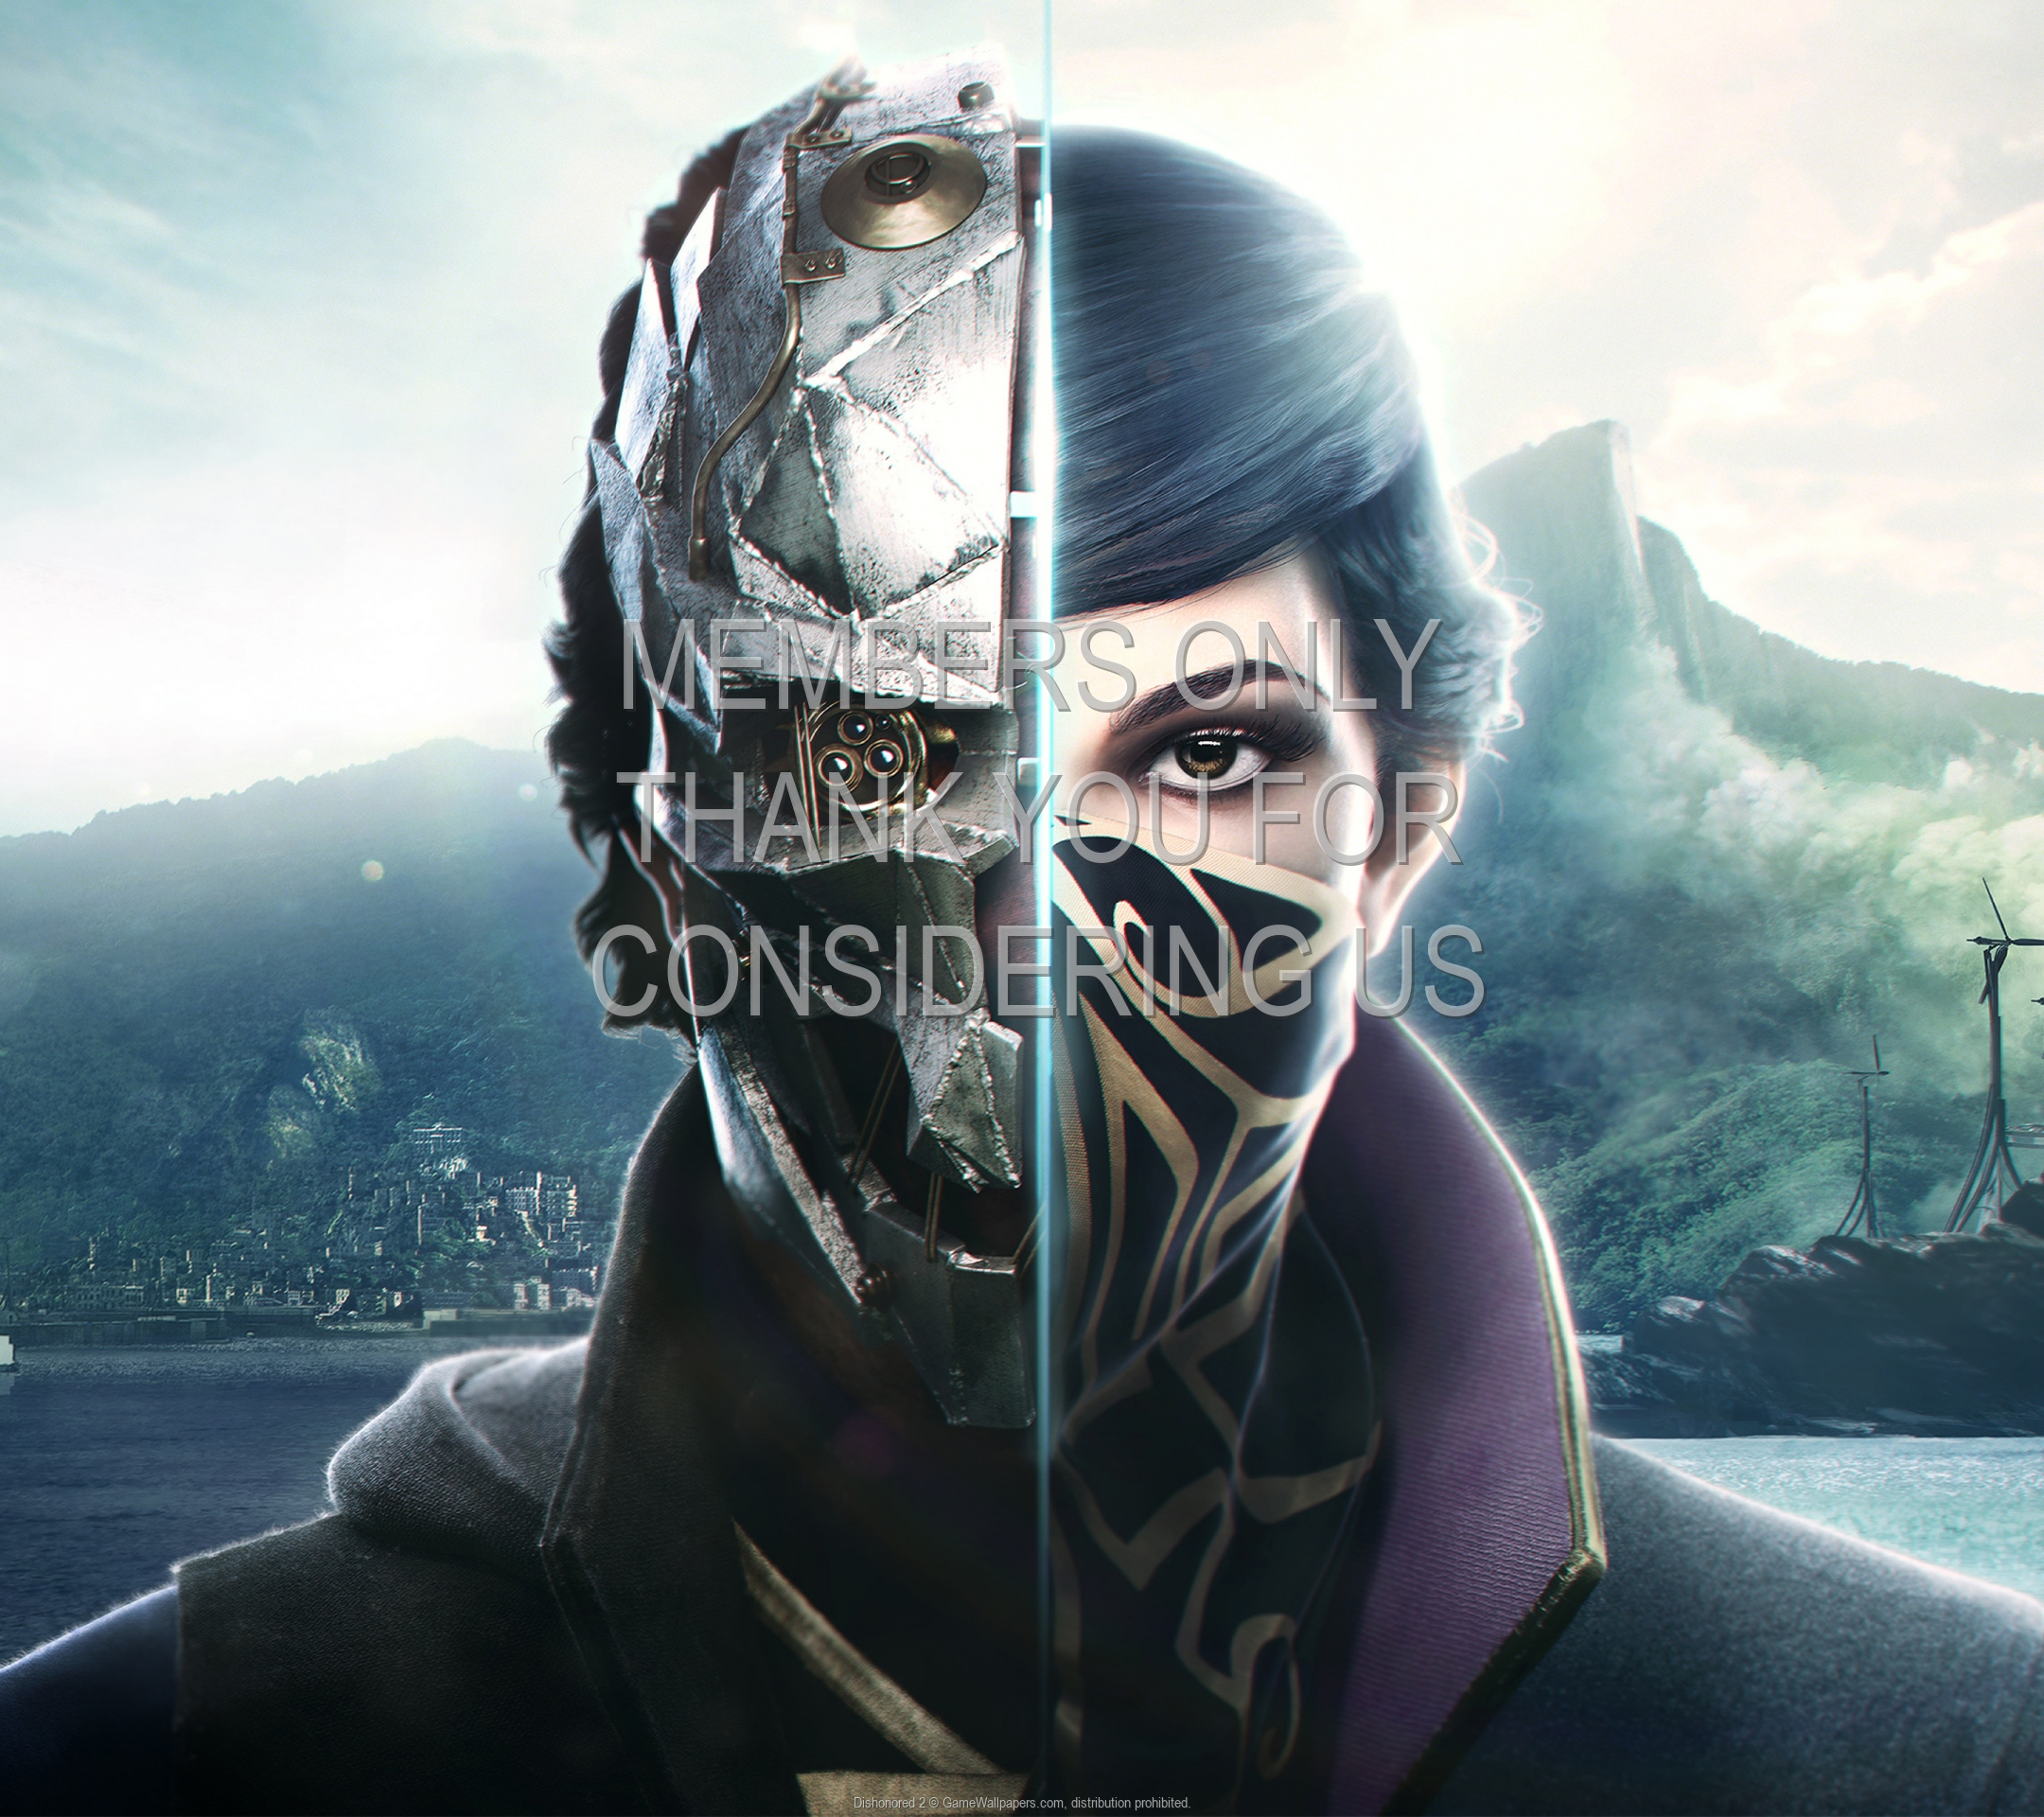 Dishonored 2 1920x1080 Mobile wallpaper or background 11